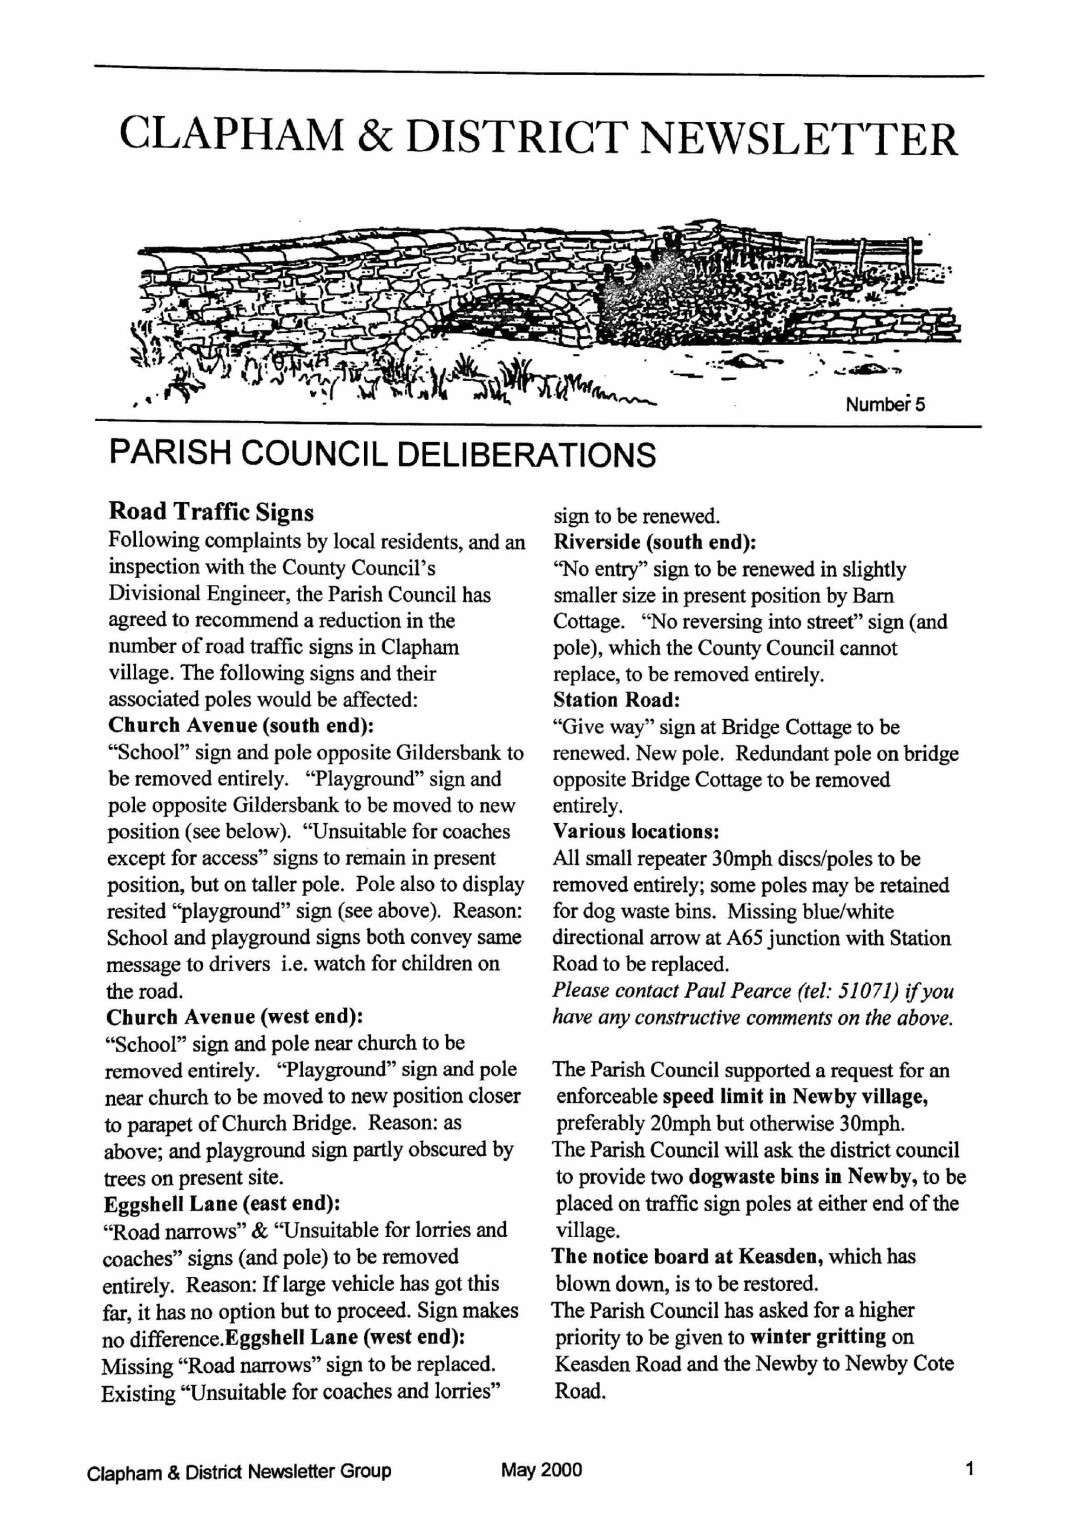 Clapham_Newsletter_No5_May_2000-1